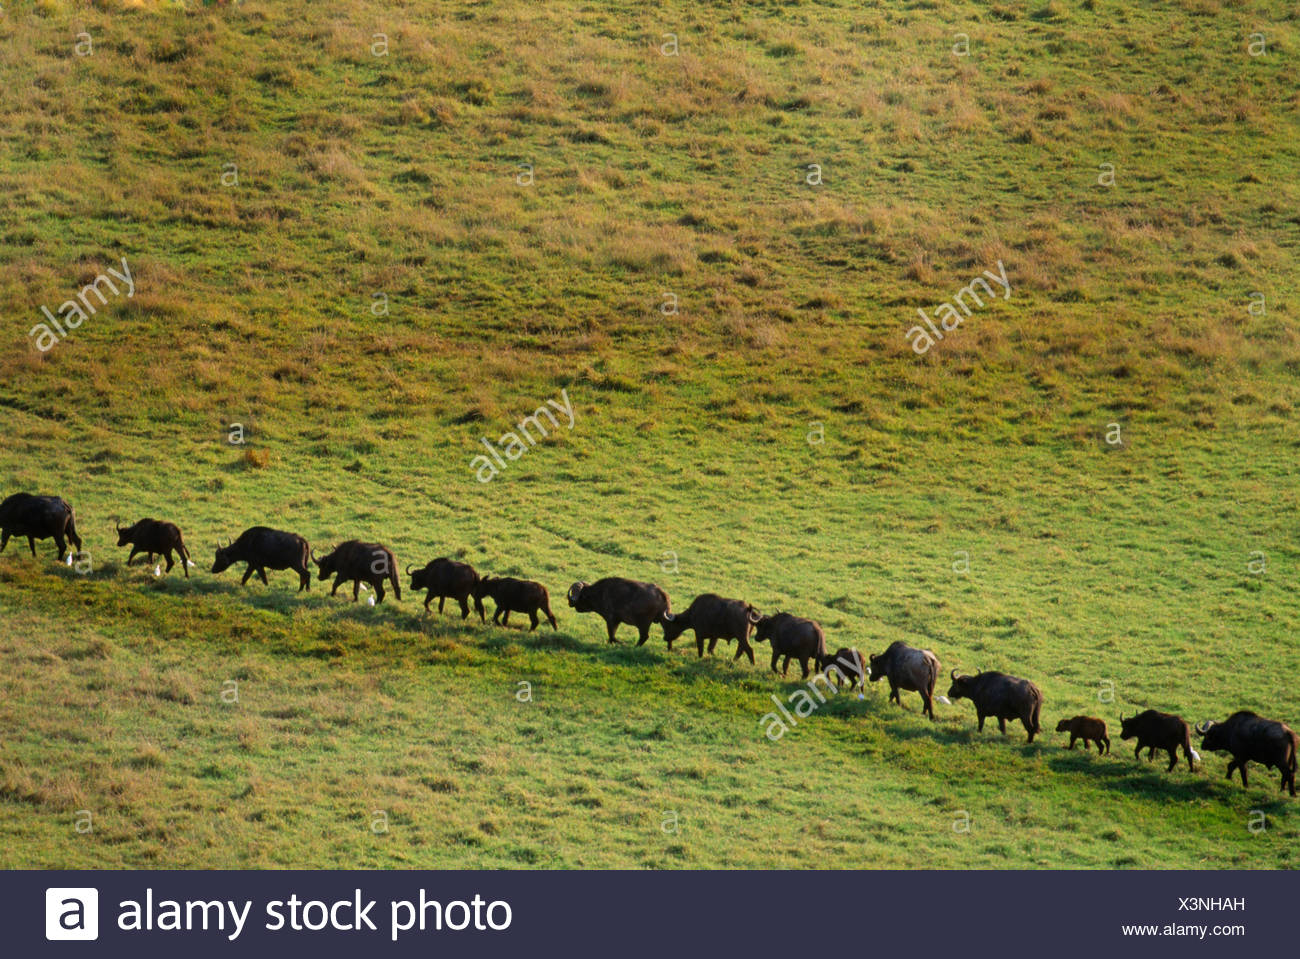 African Buffalo live in savanna and woodlands of central and southern Africa. - Stock Image